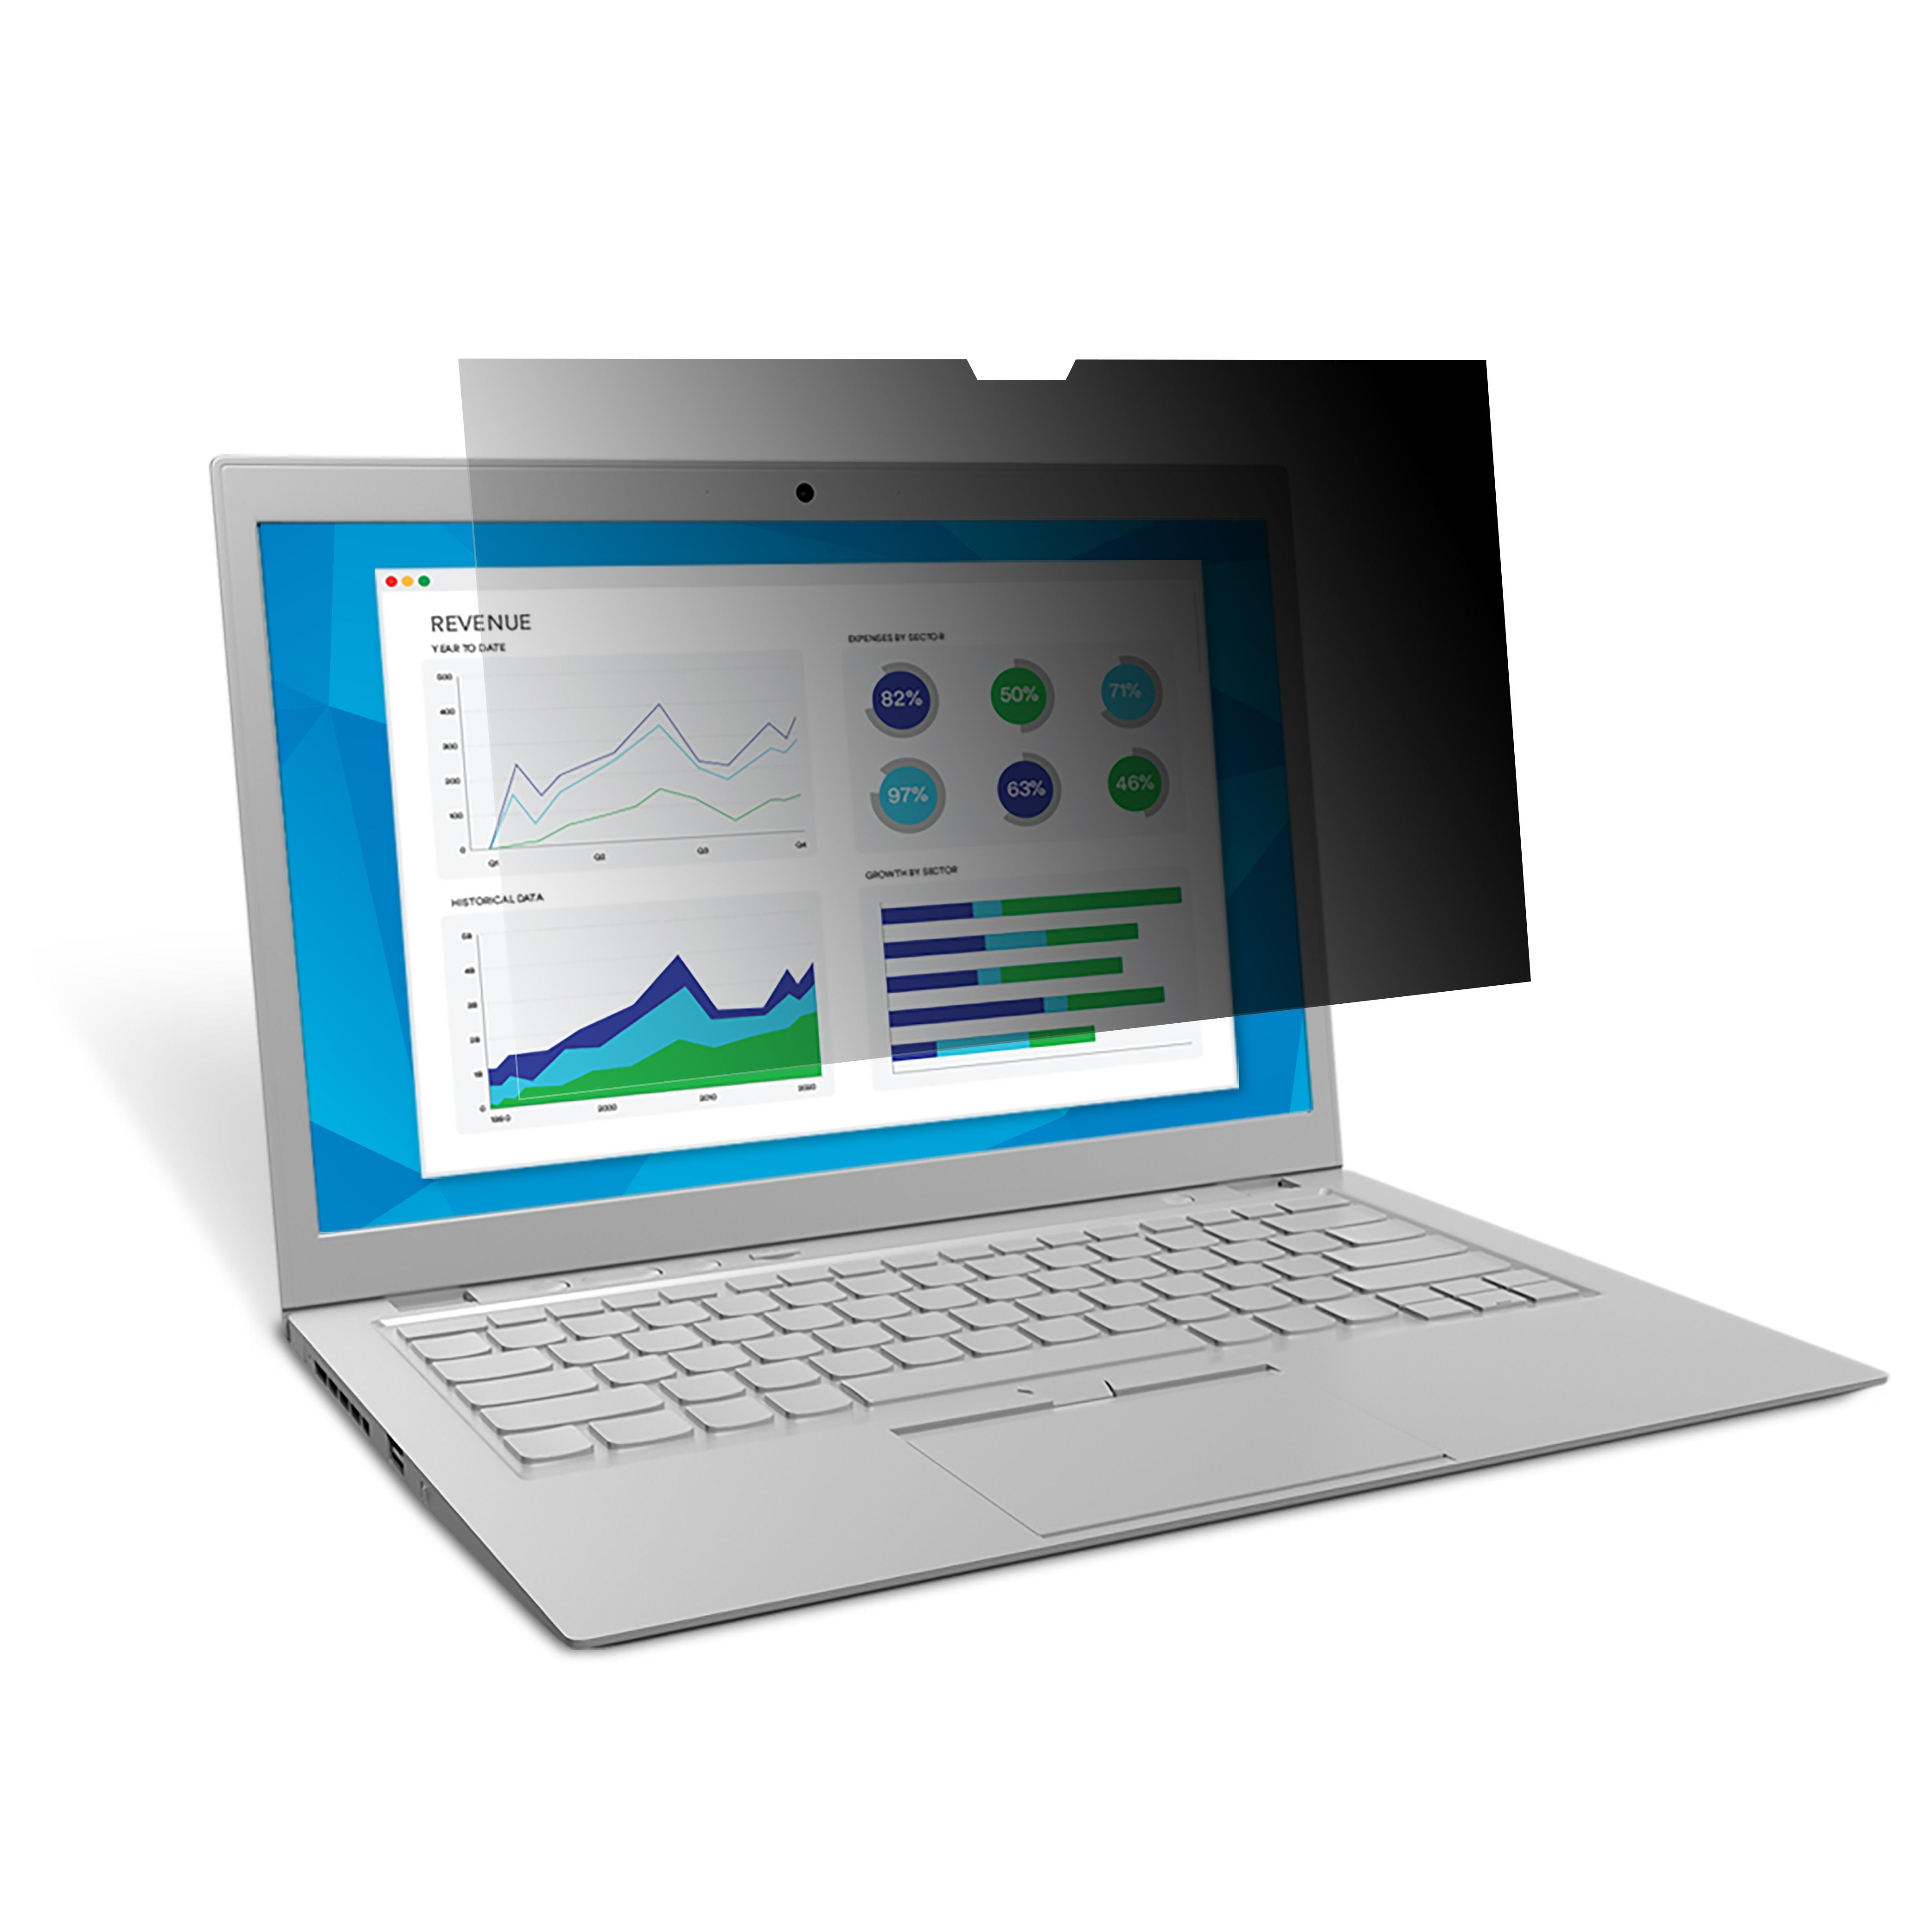 3M™ Privacy Filter for 12.3-inch Google™ Pixelbook (16:9) (PFNGG001) - 285 mm (W) x 209 mm (H)